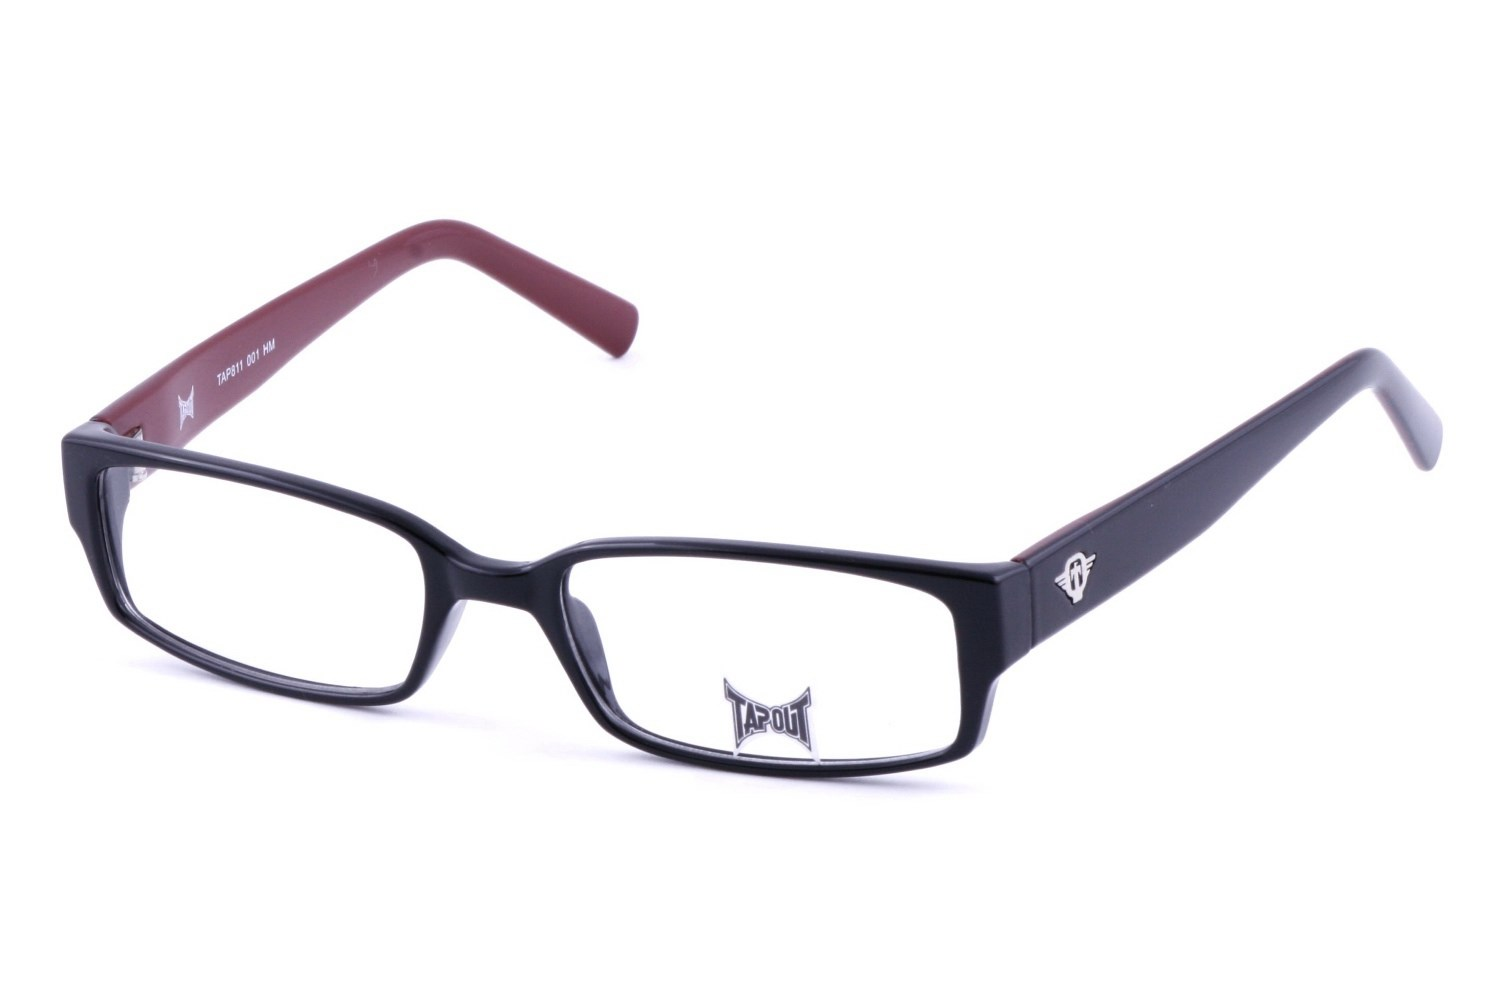 Glasses Frames Bentleigh : Tapout - Canada